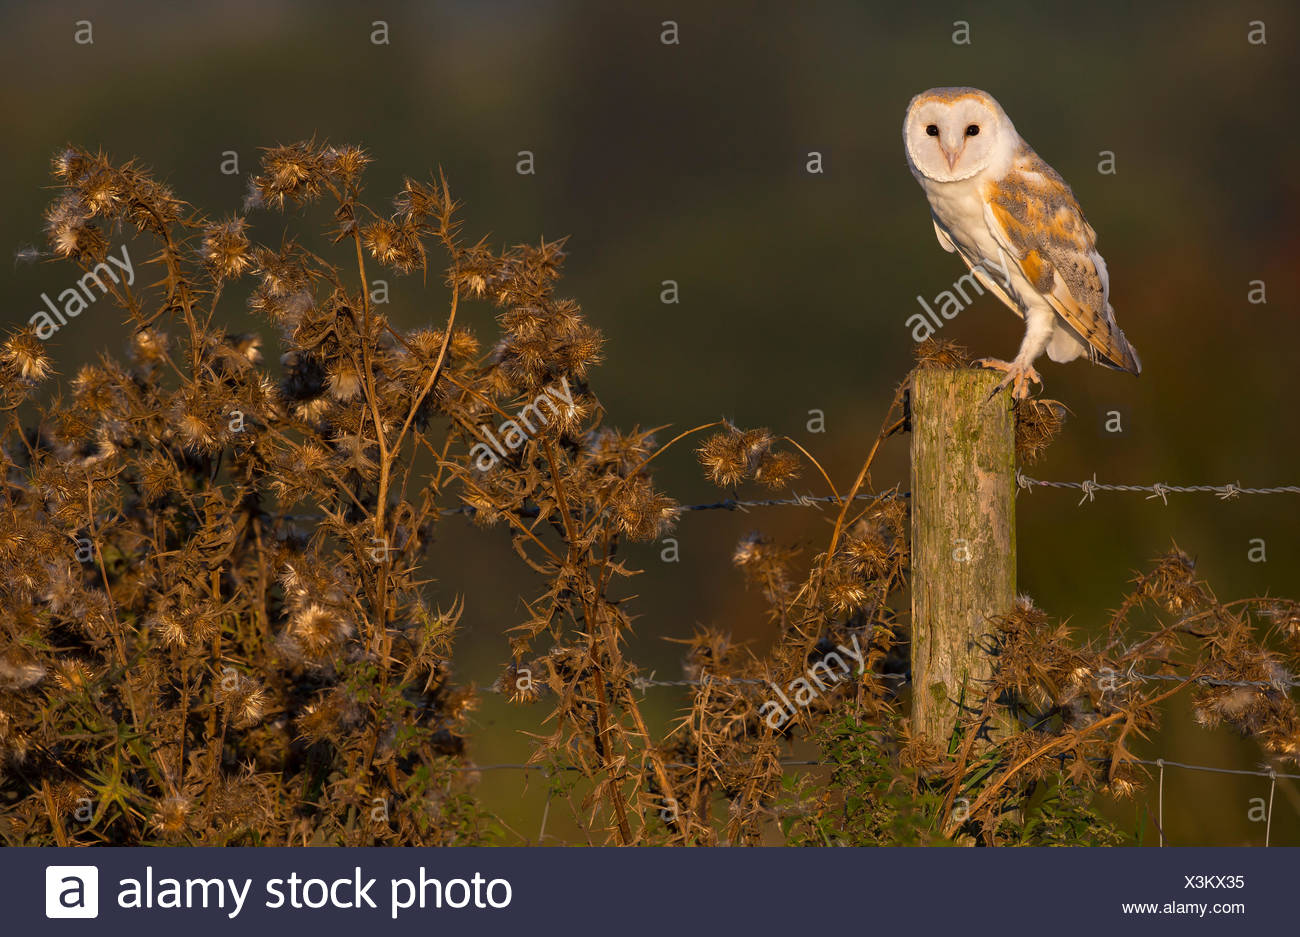 Barn Owl perched on a fence post in autumn - GB - Stock Image